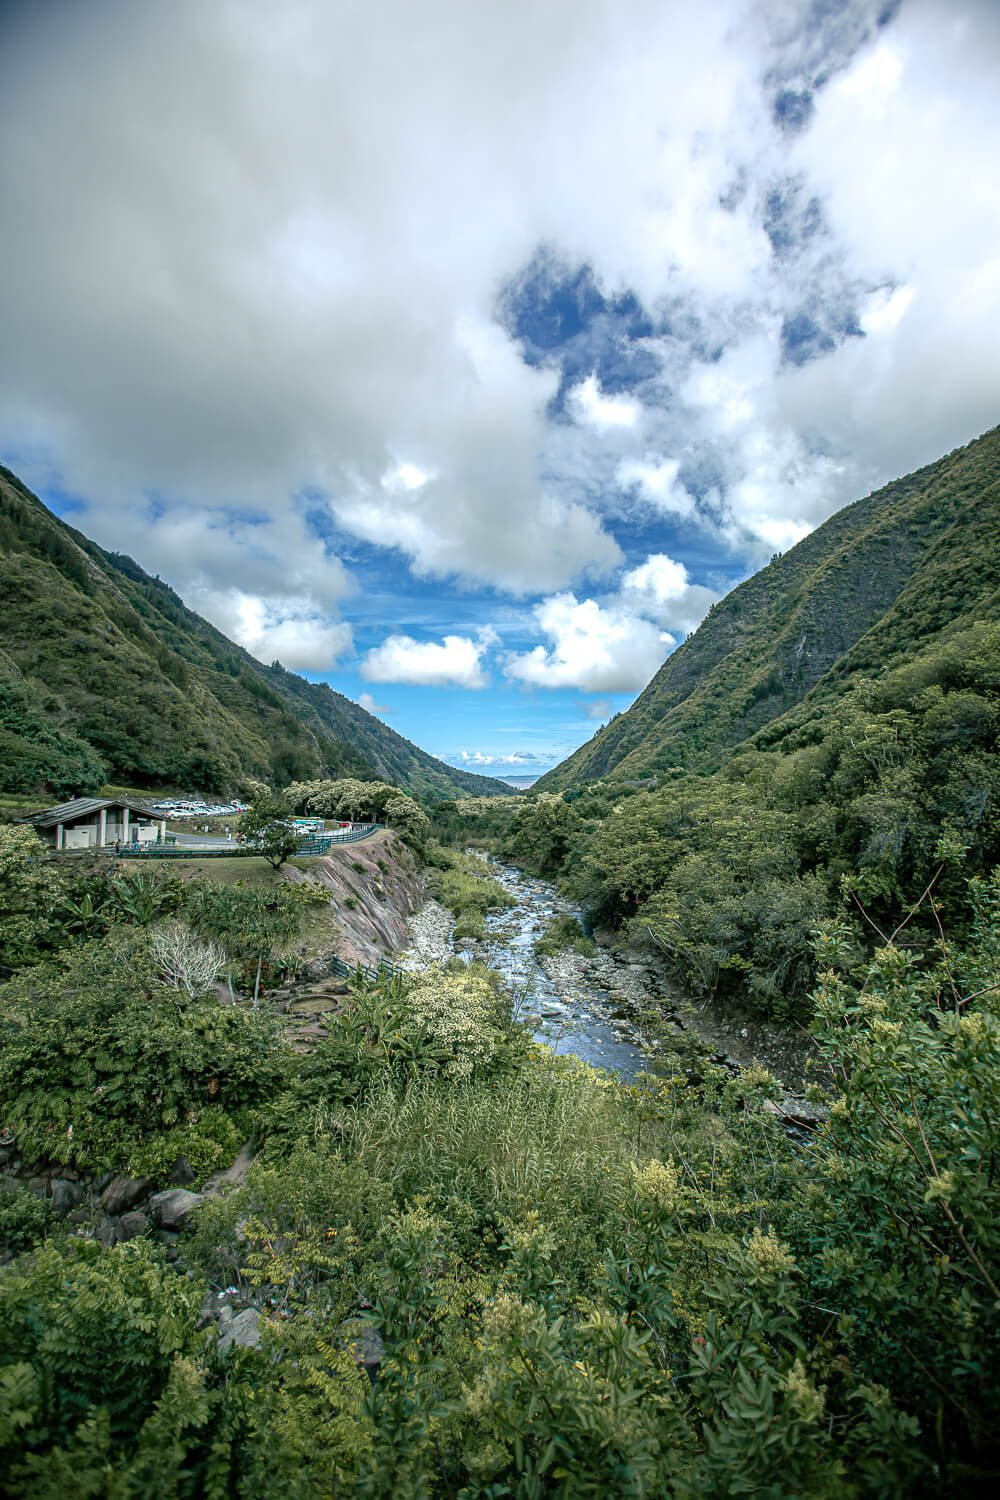 View of Iao Valley